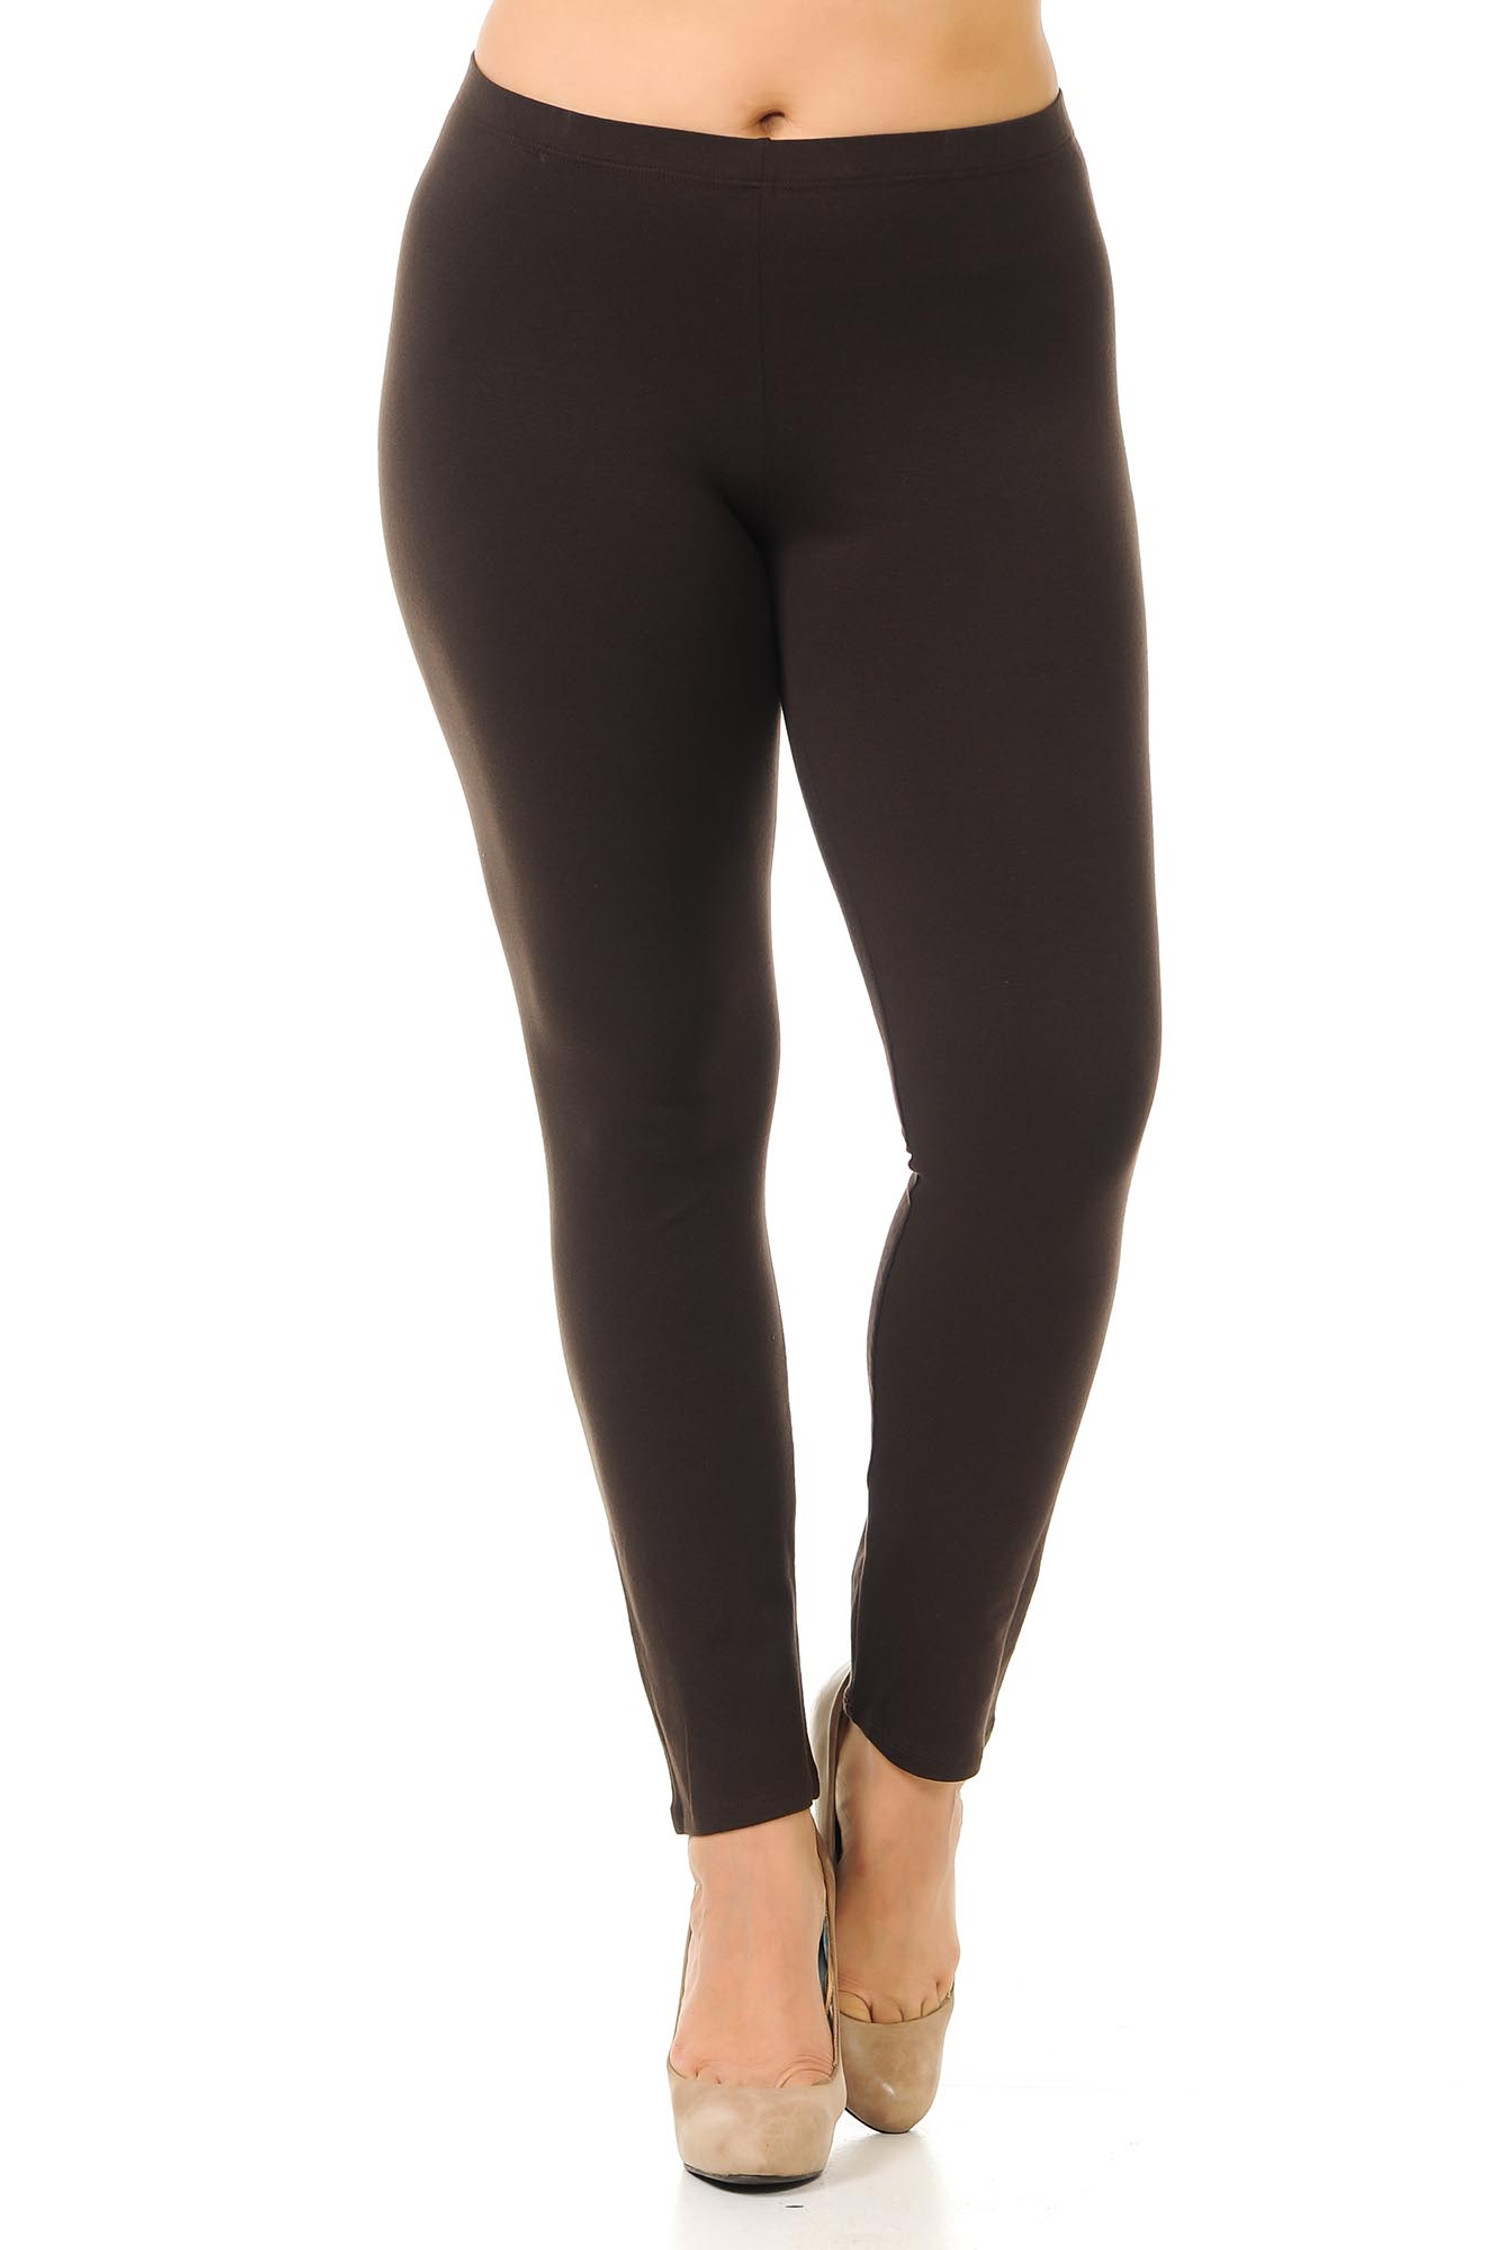 Front view image of plus size brown full length cotton leggings - made in the USA.